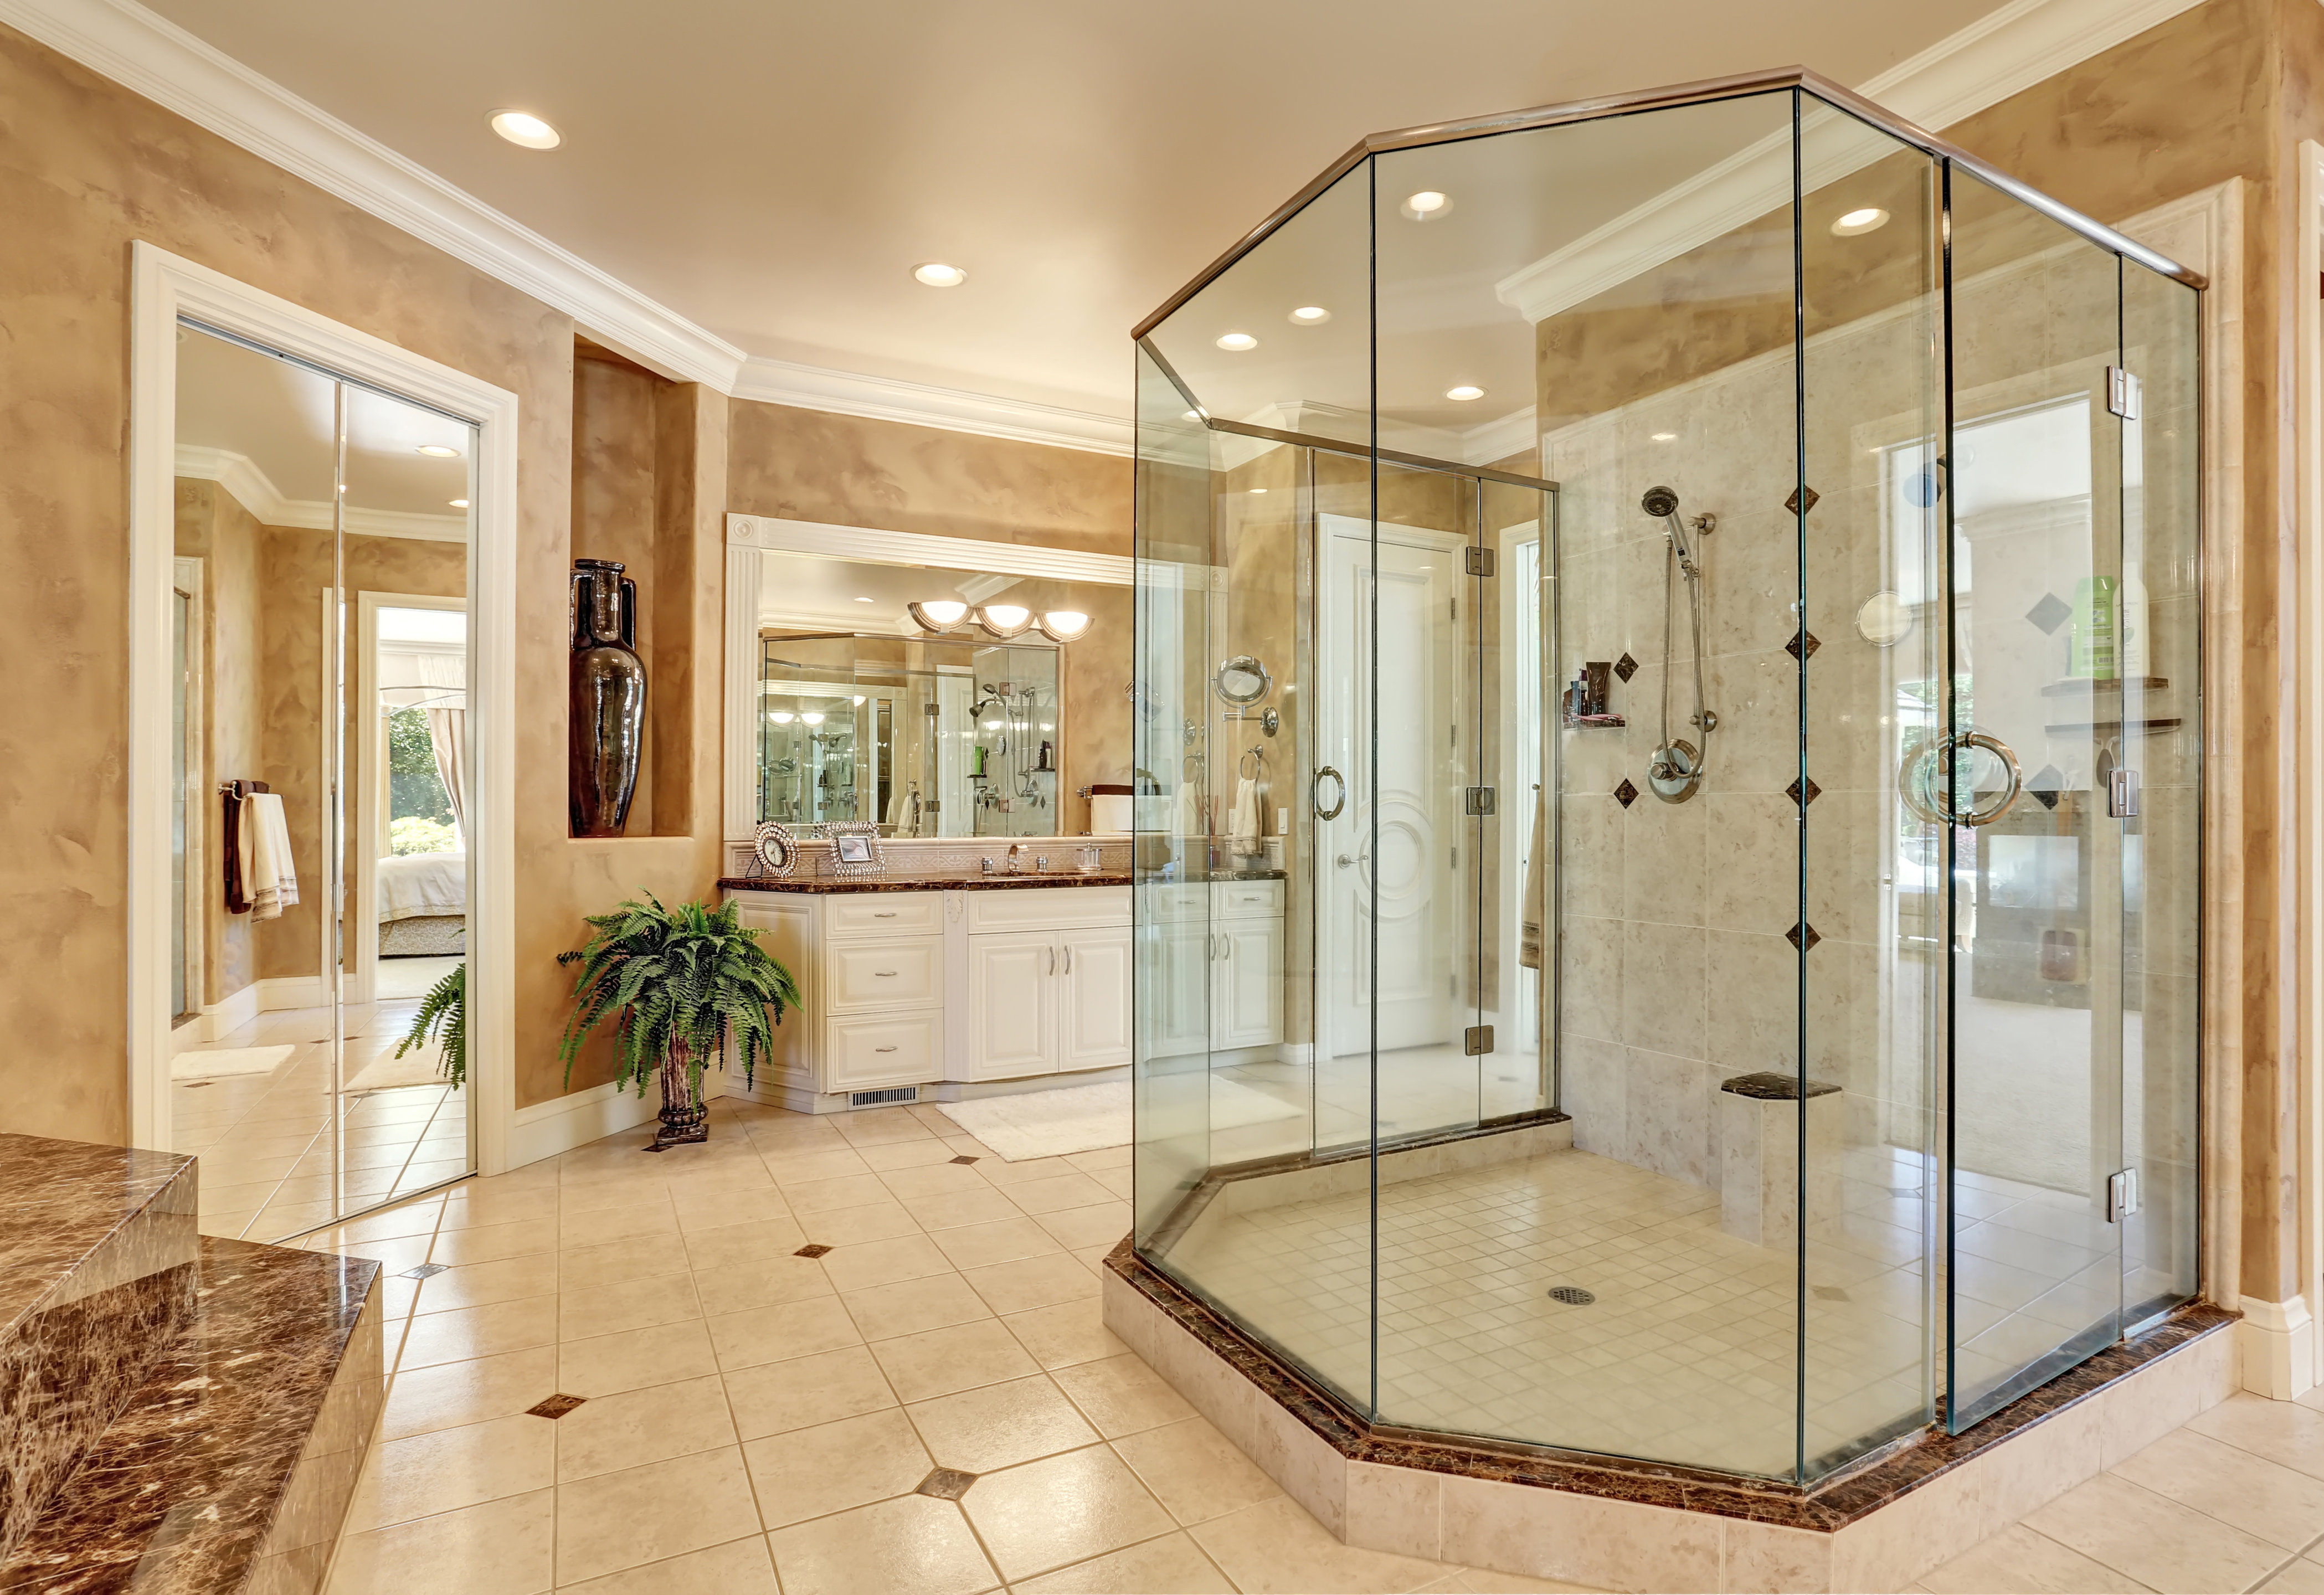 Design and Door Options for Showers